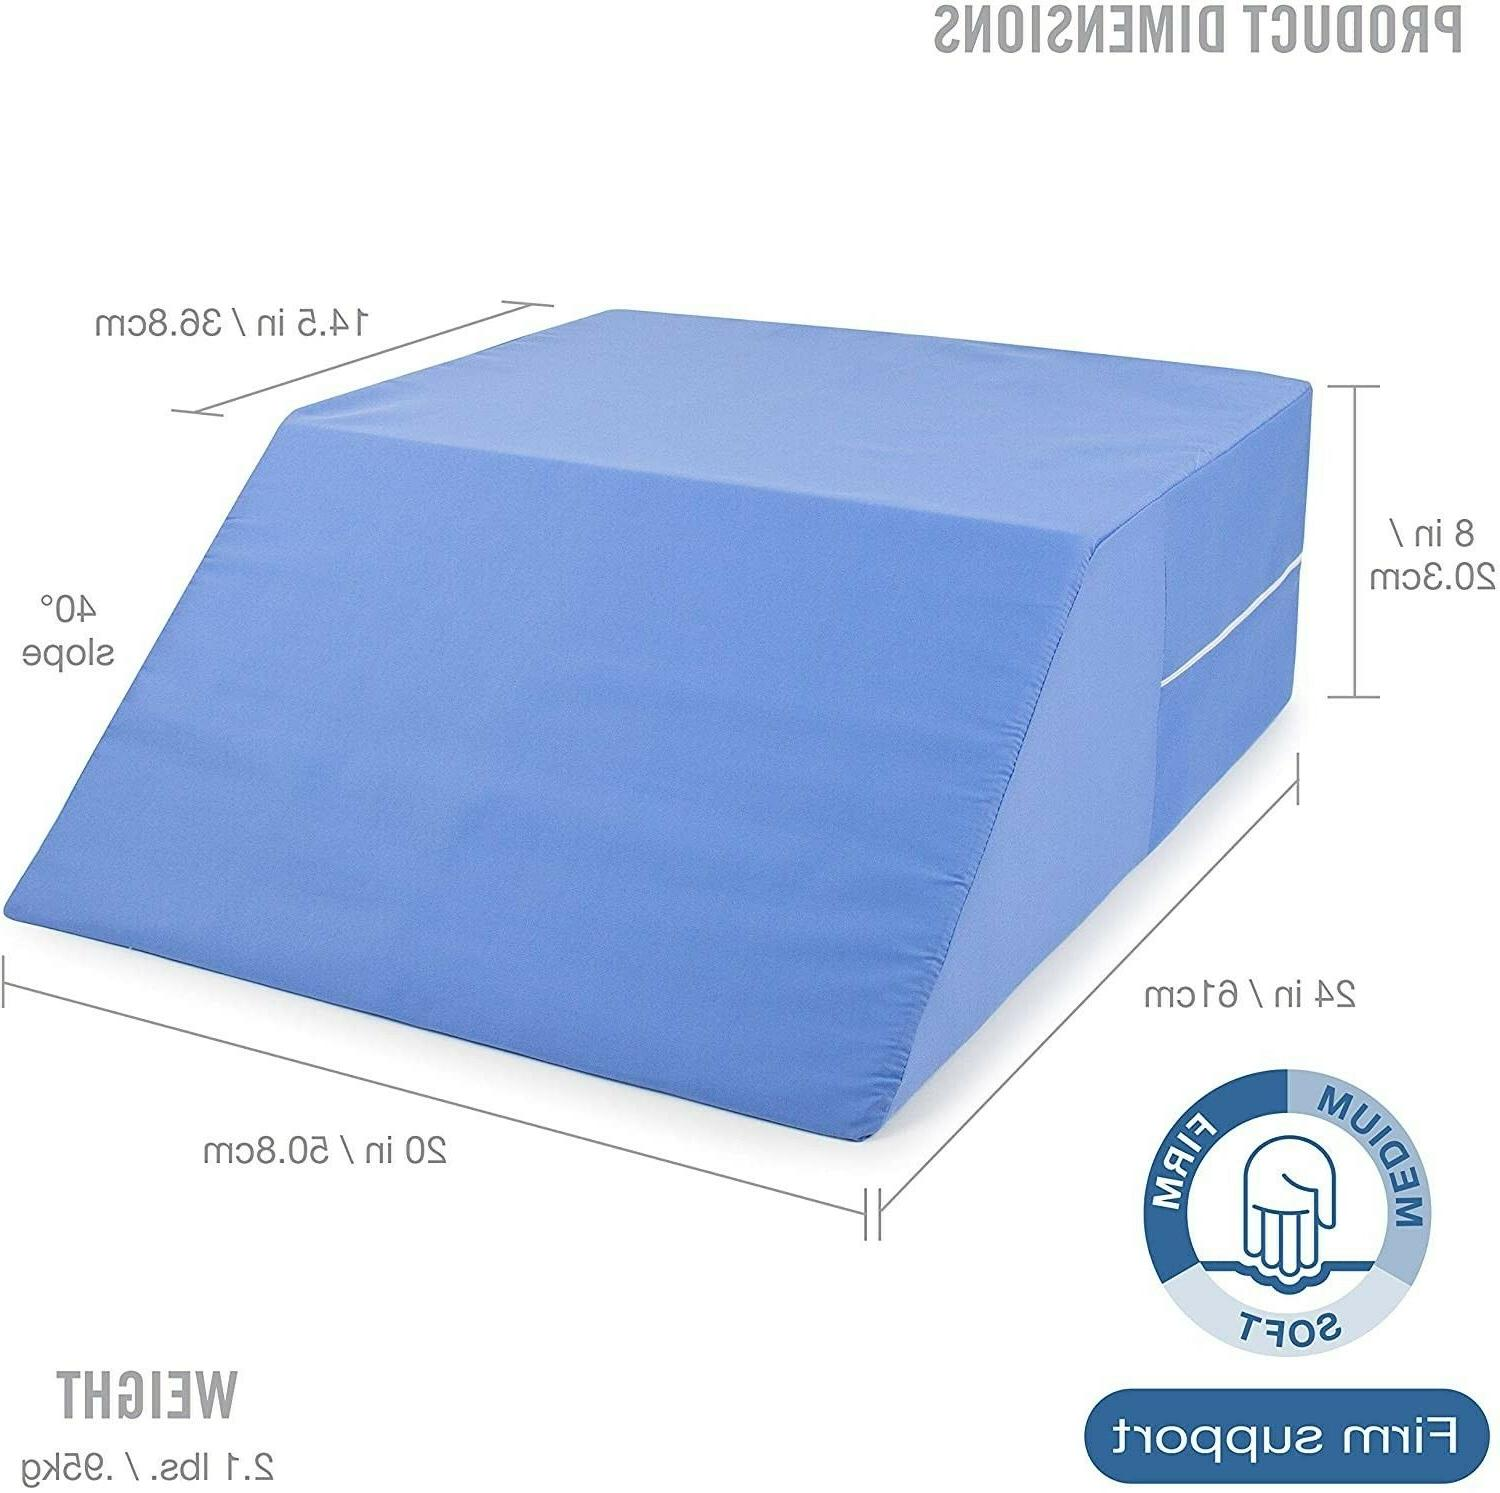 DMI Ortho Bed Wedge Elevated Leg Pillow, Supportive Foam Pil